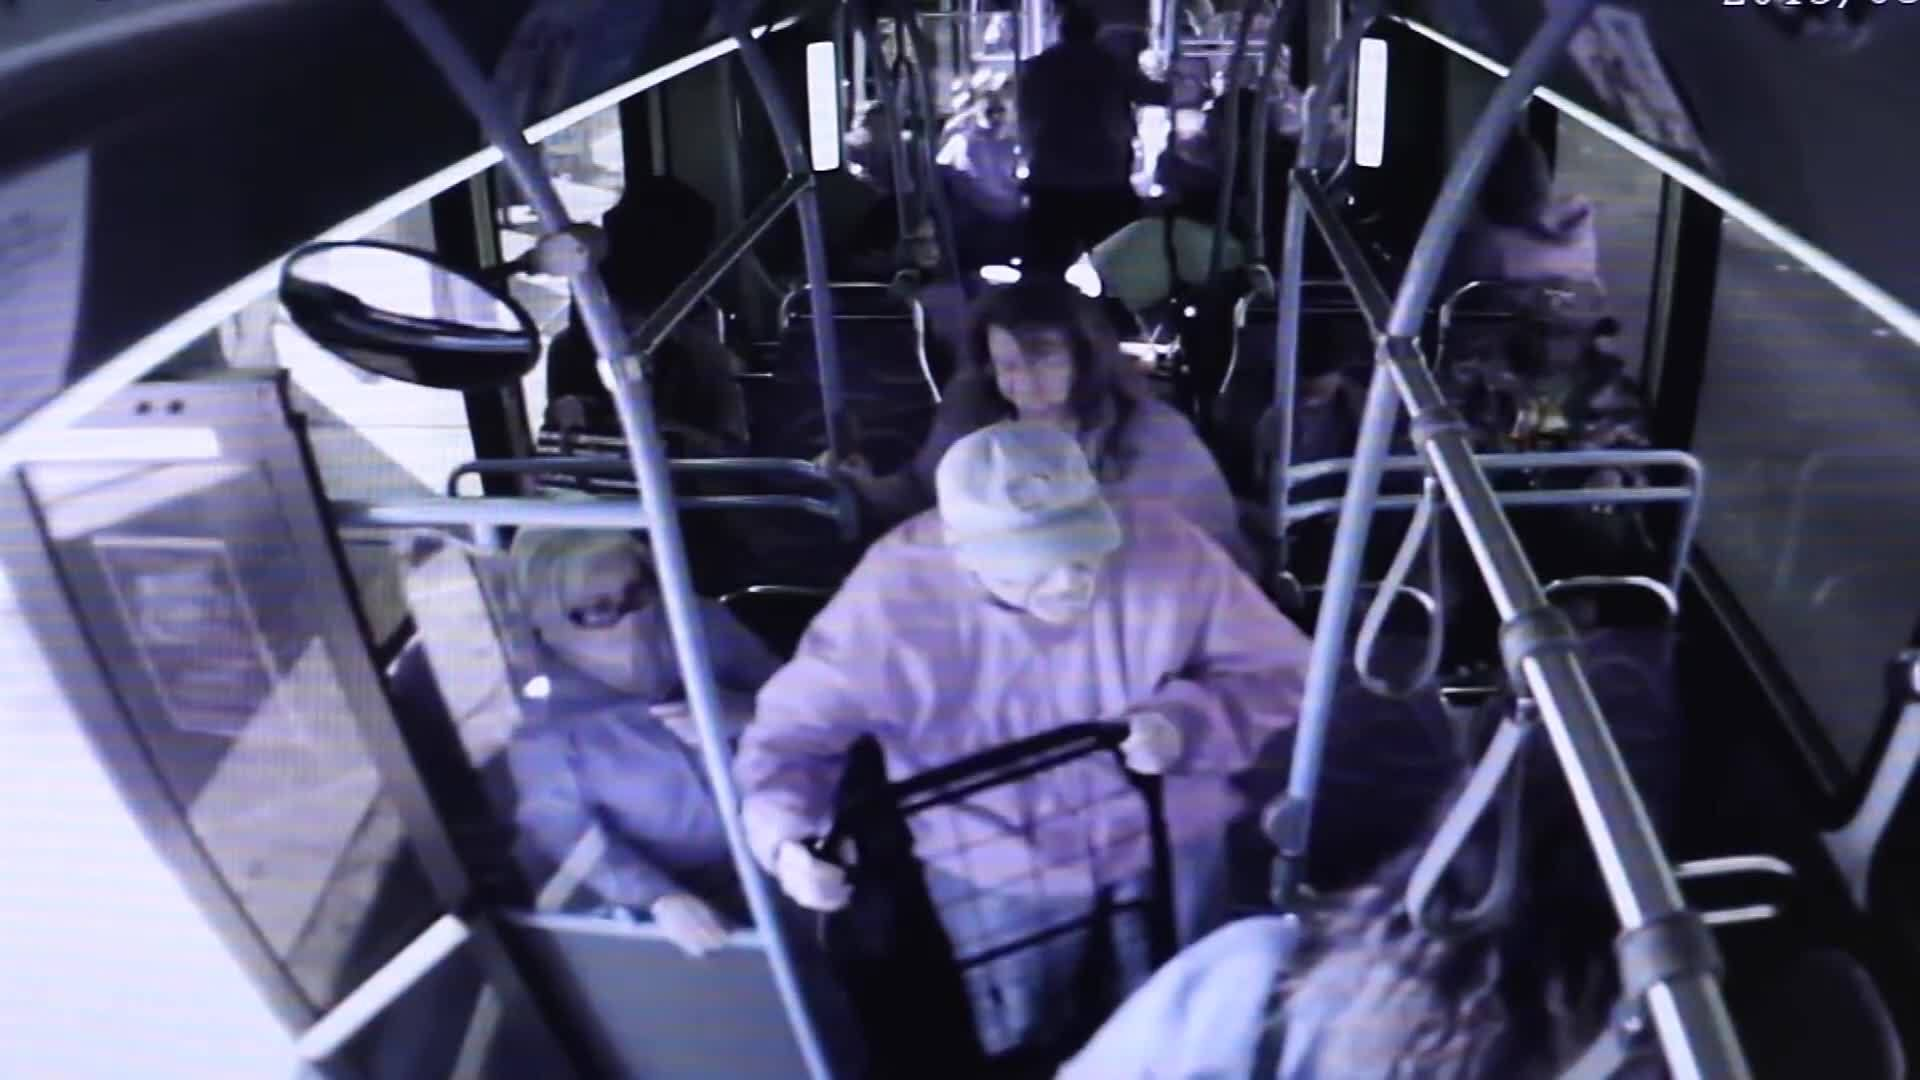 Video shows moment elderly man is pushed off bus before his death